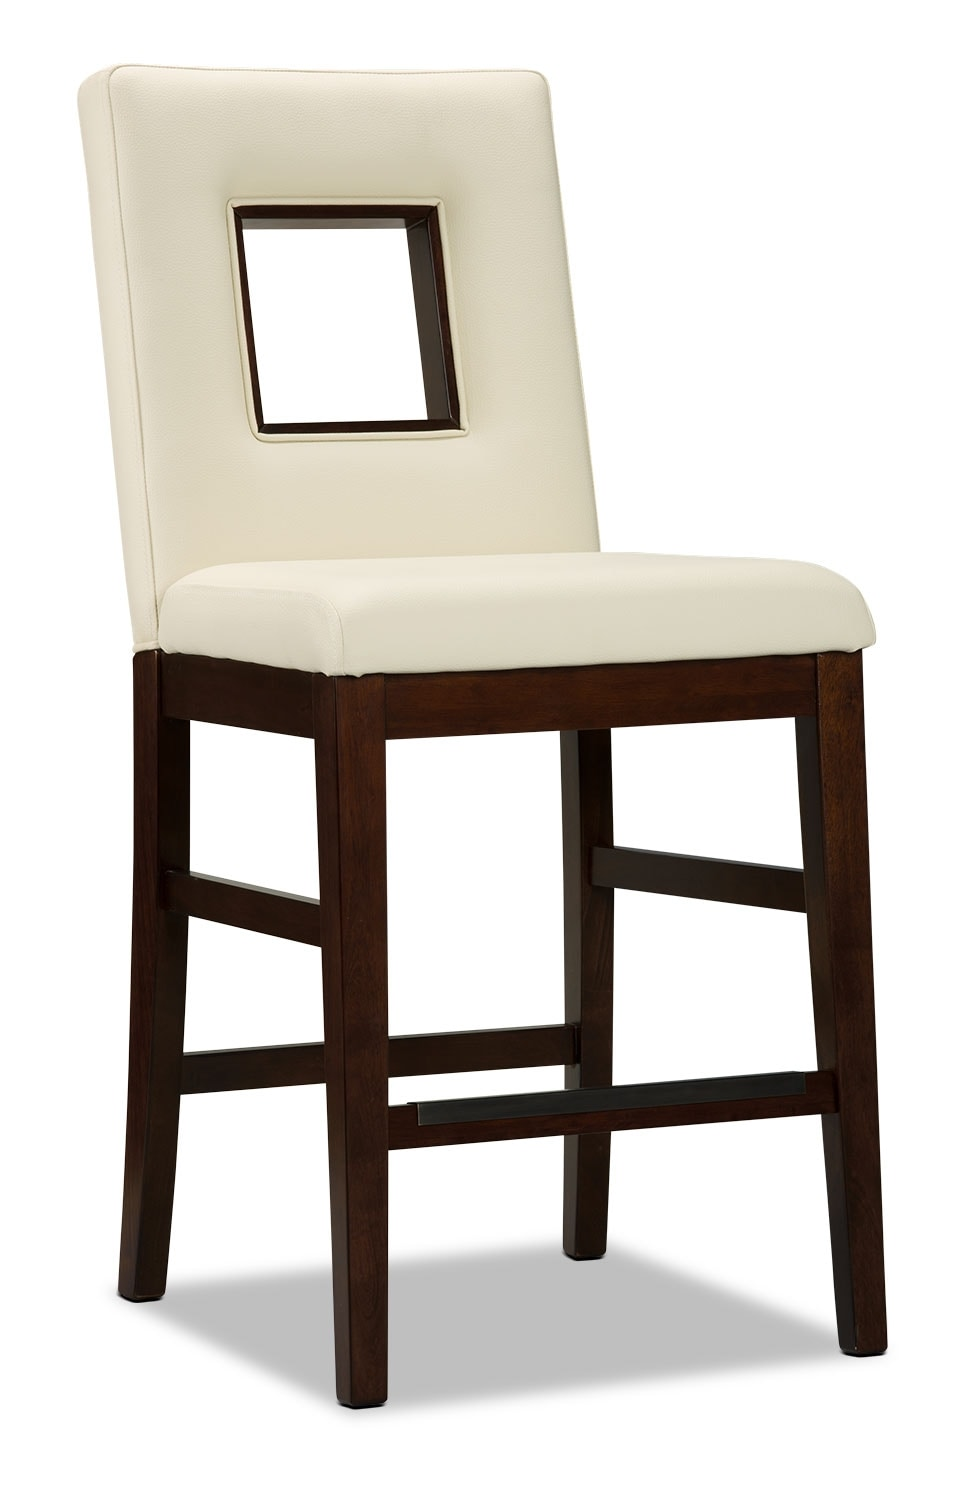 Dining Room Furniture - Enzo Counter-Height Dining Chair